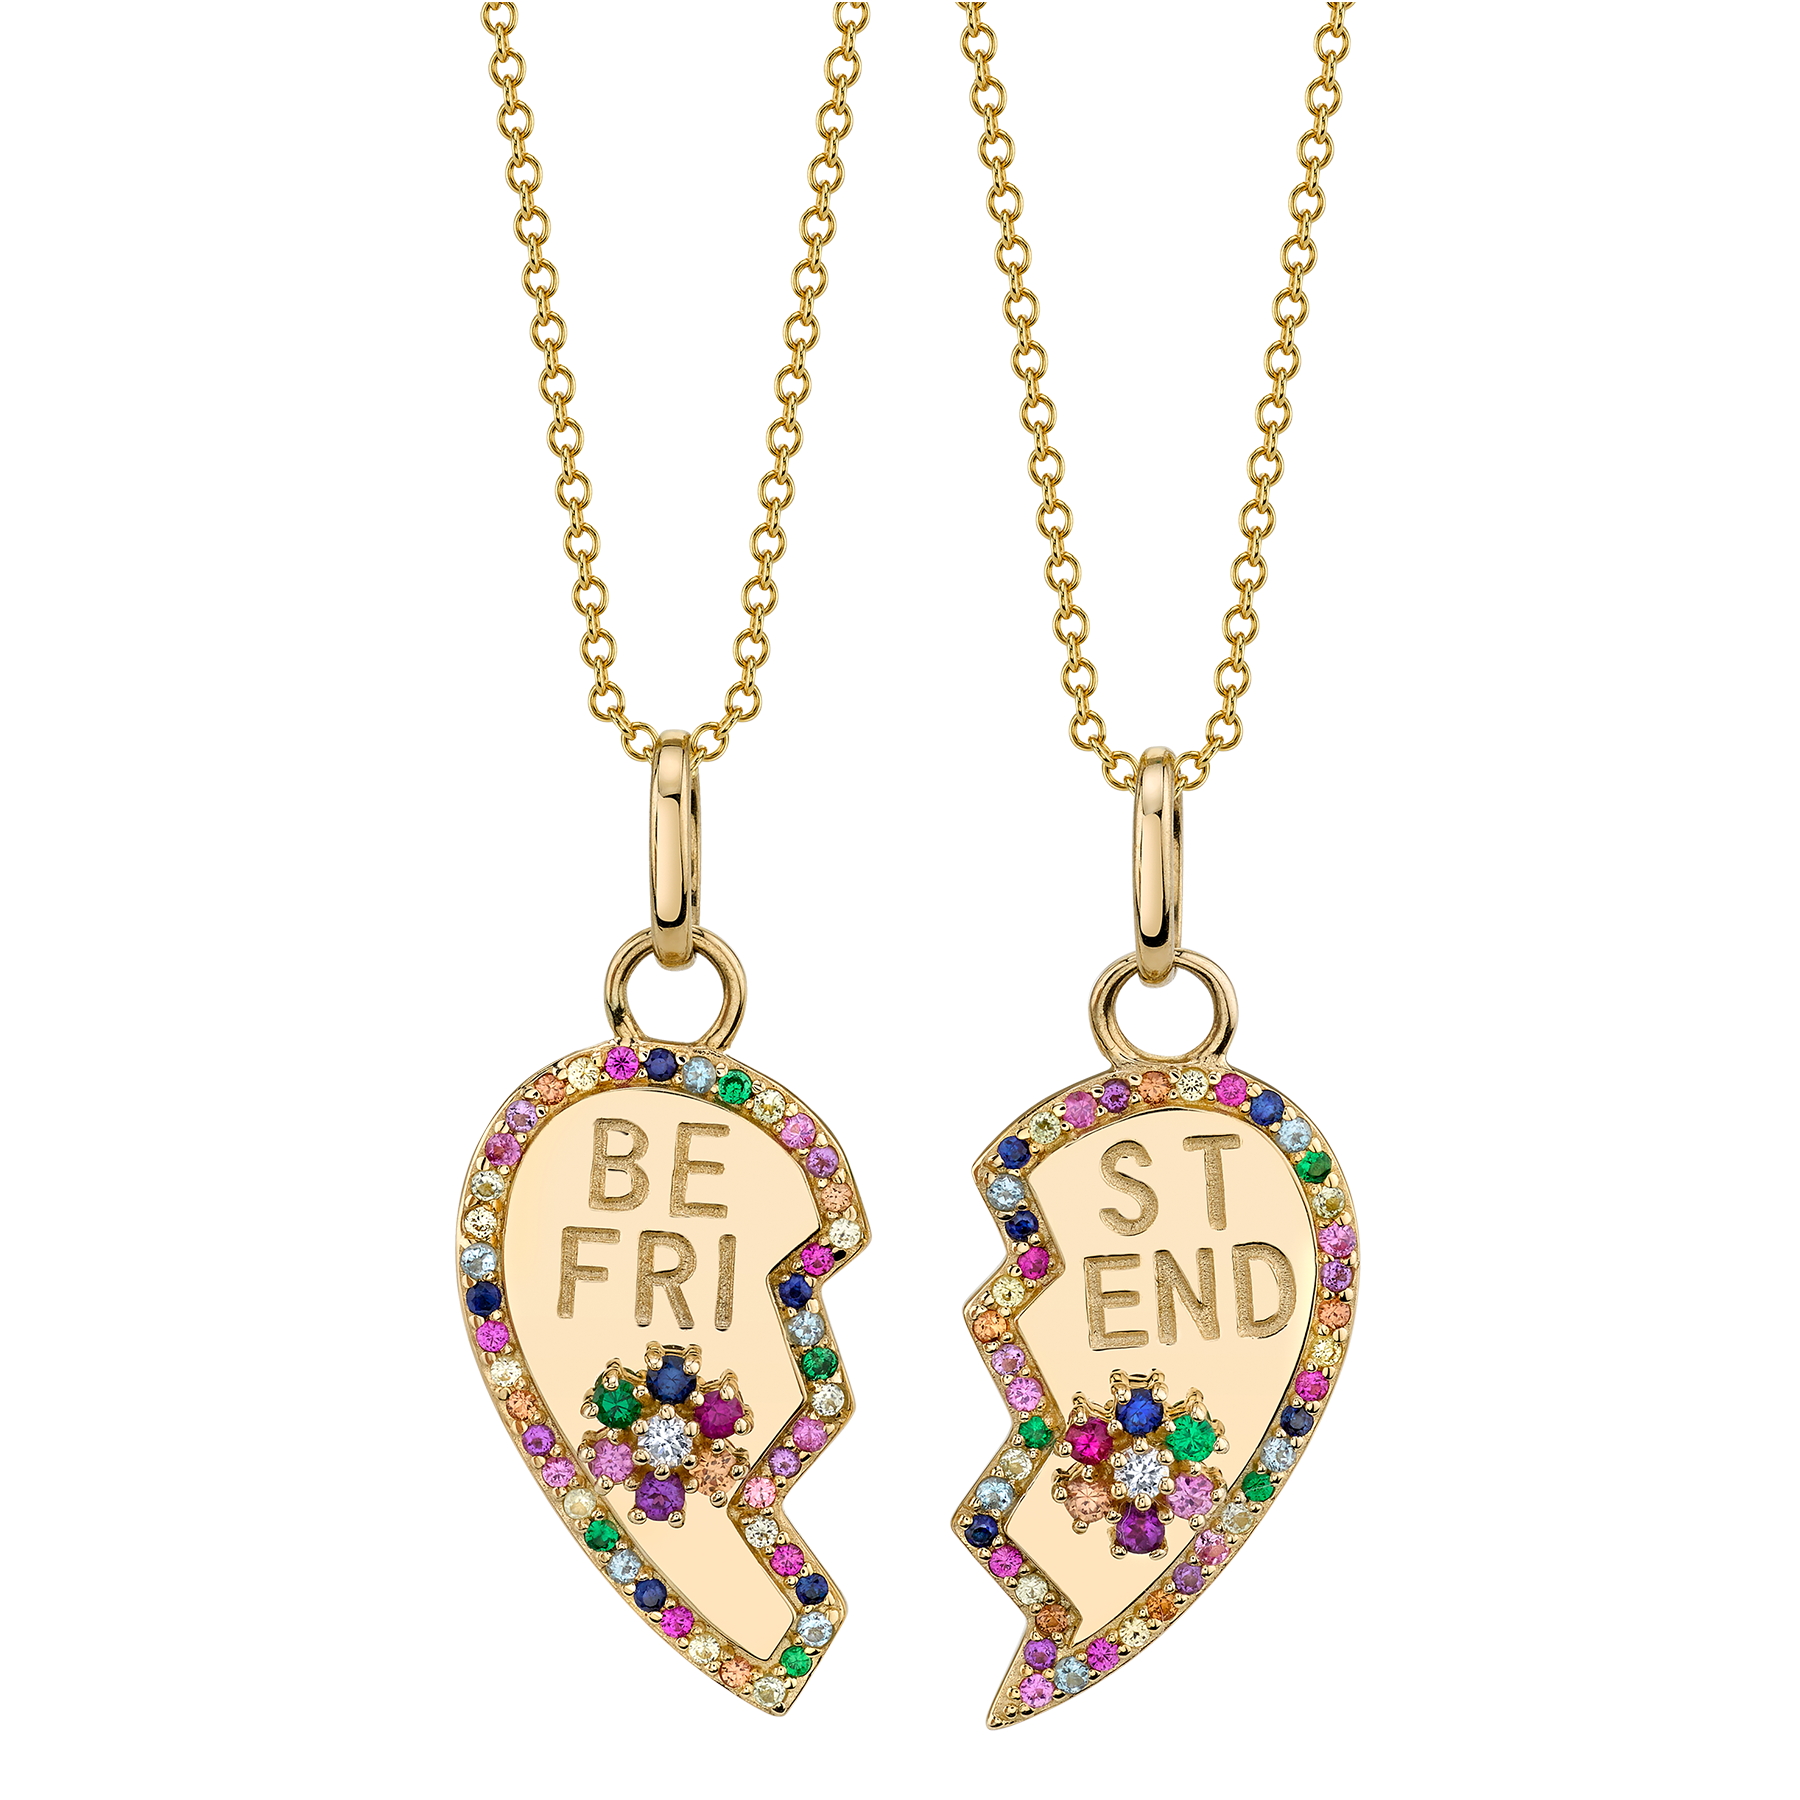 RAINBOW PAVE BFF HEART AND FLOWER PENDANT SET, 14K YELLOW GOLD, SAPPHIRES EMERALD RUBY DIAMOND